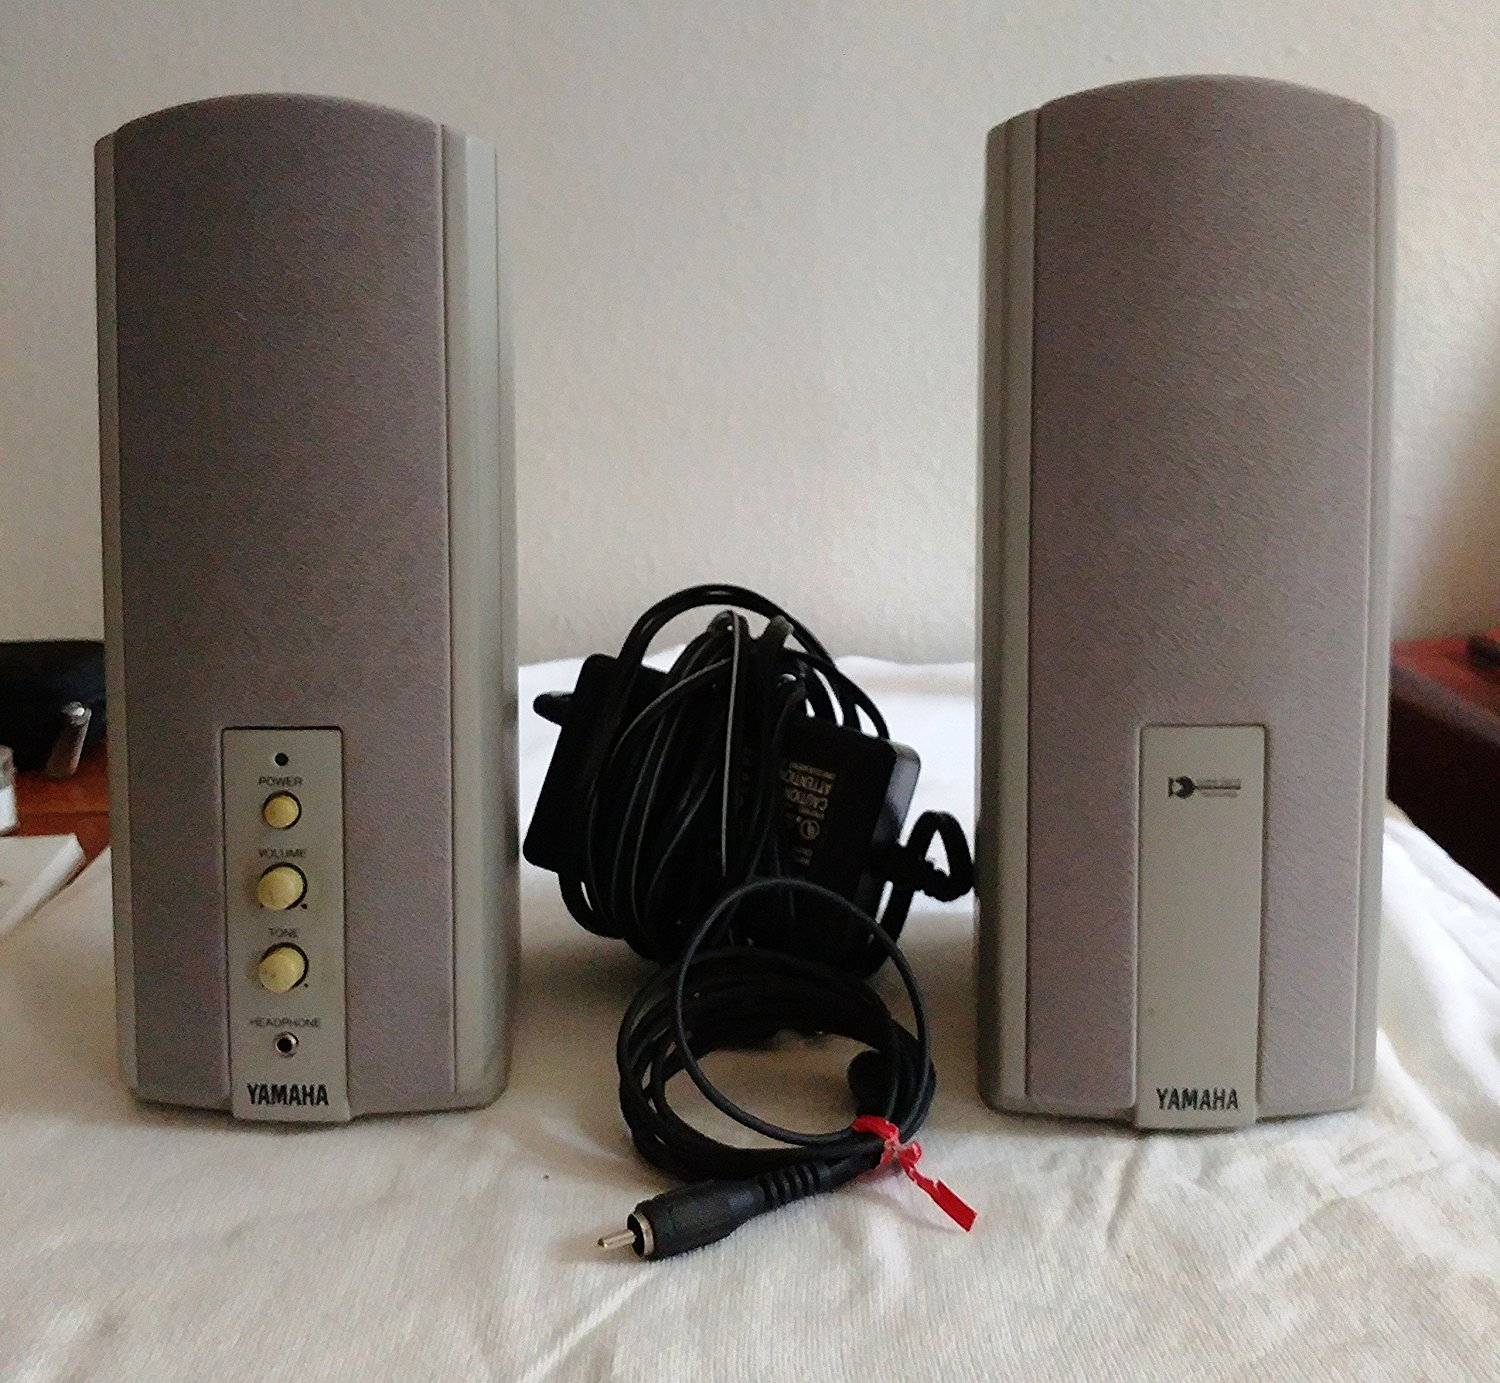 Yamaha YST-M15 - speakers - for PC